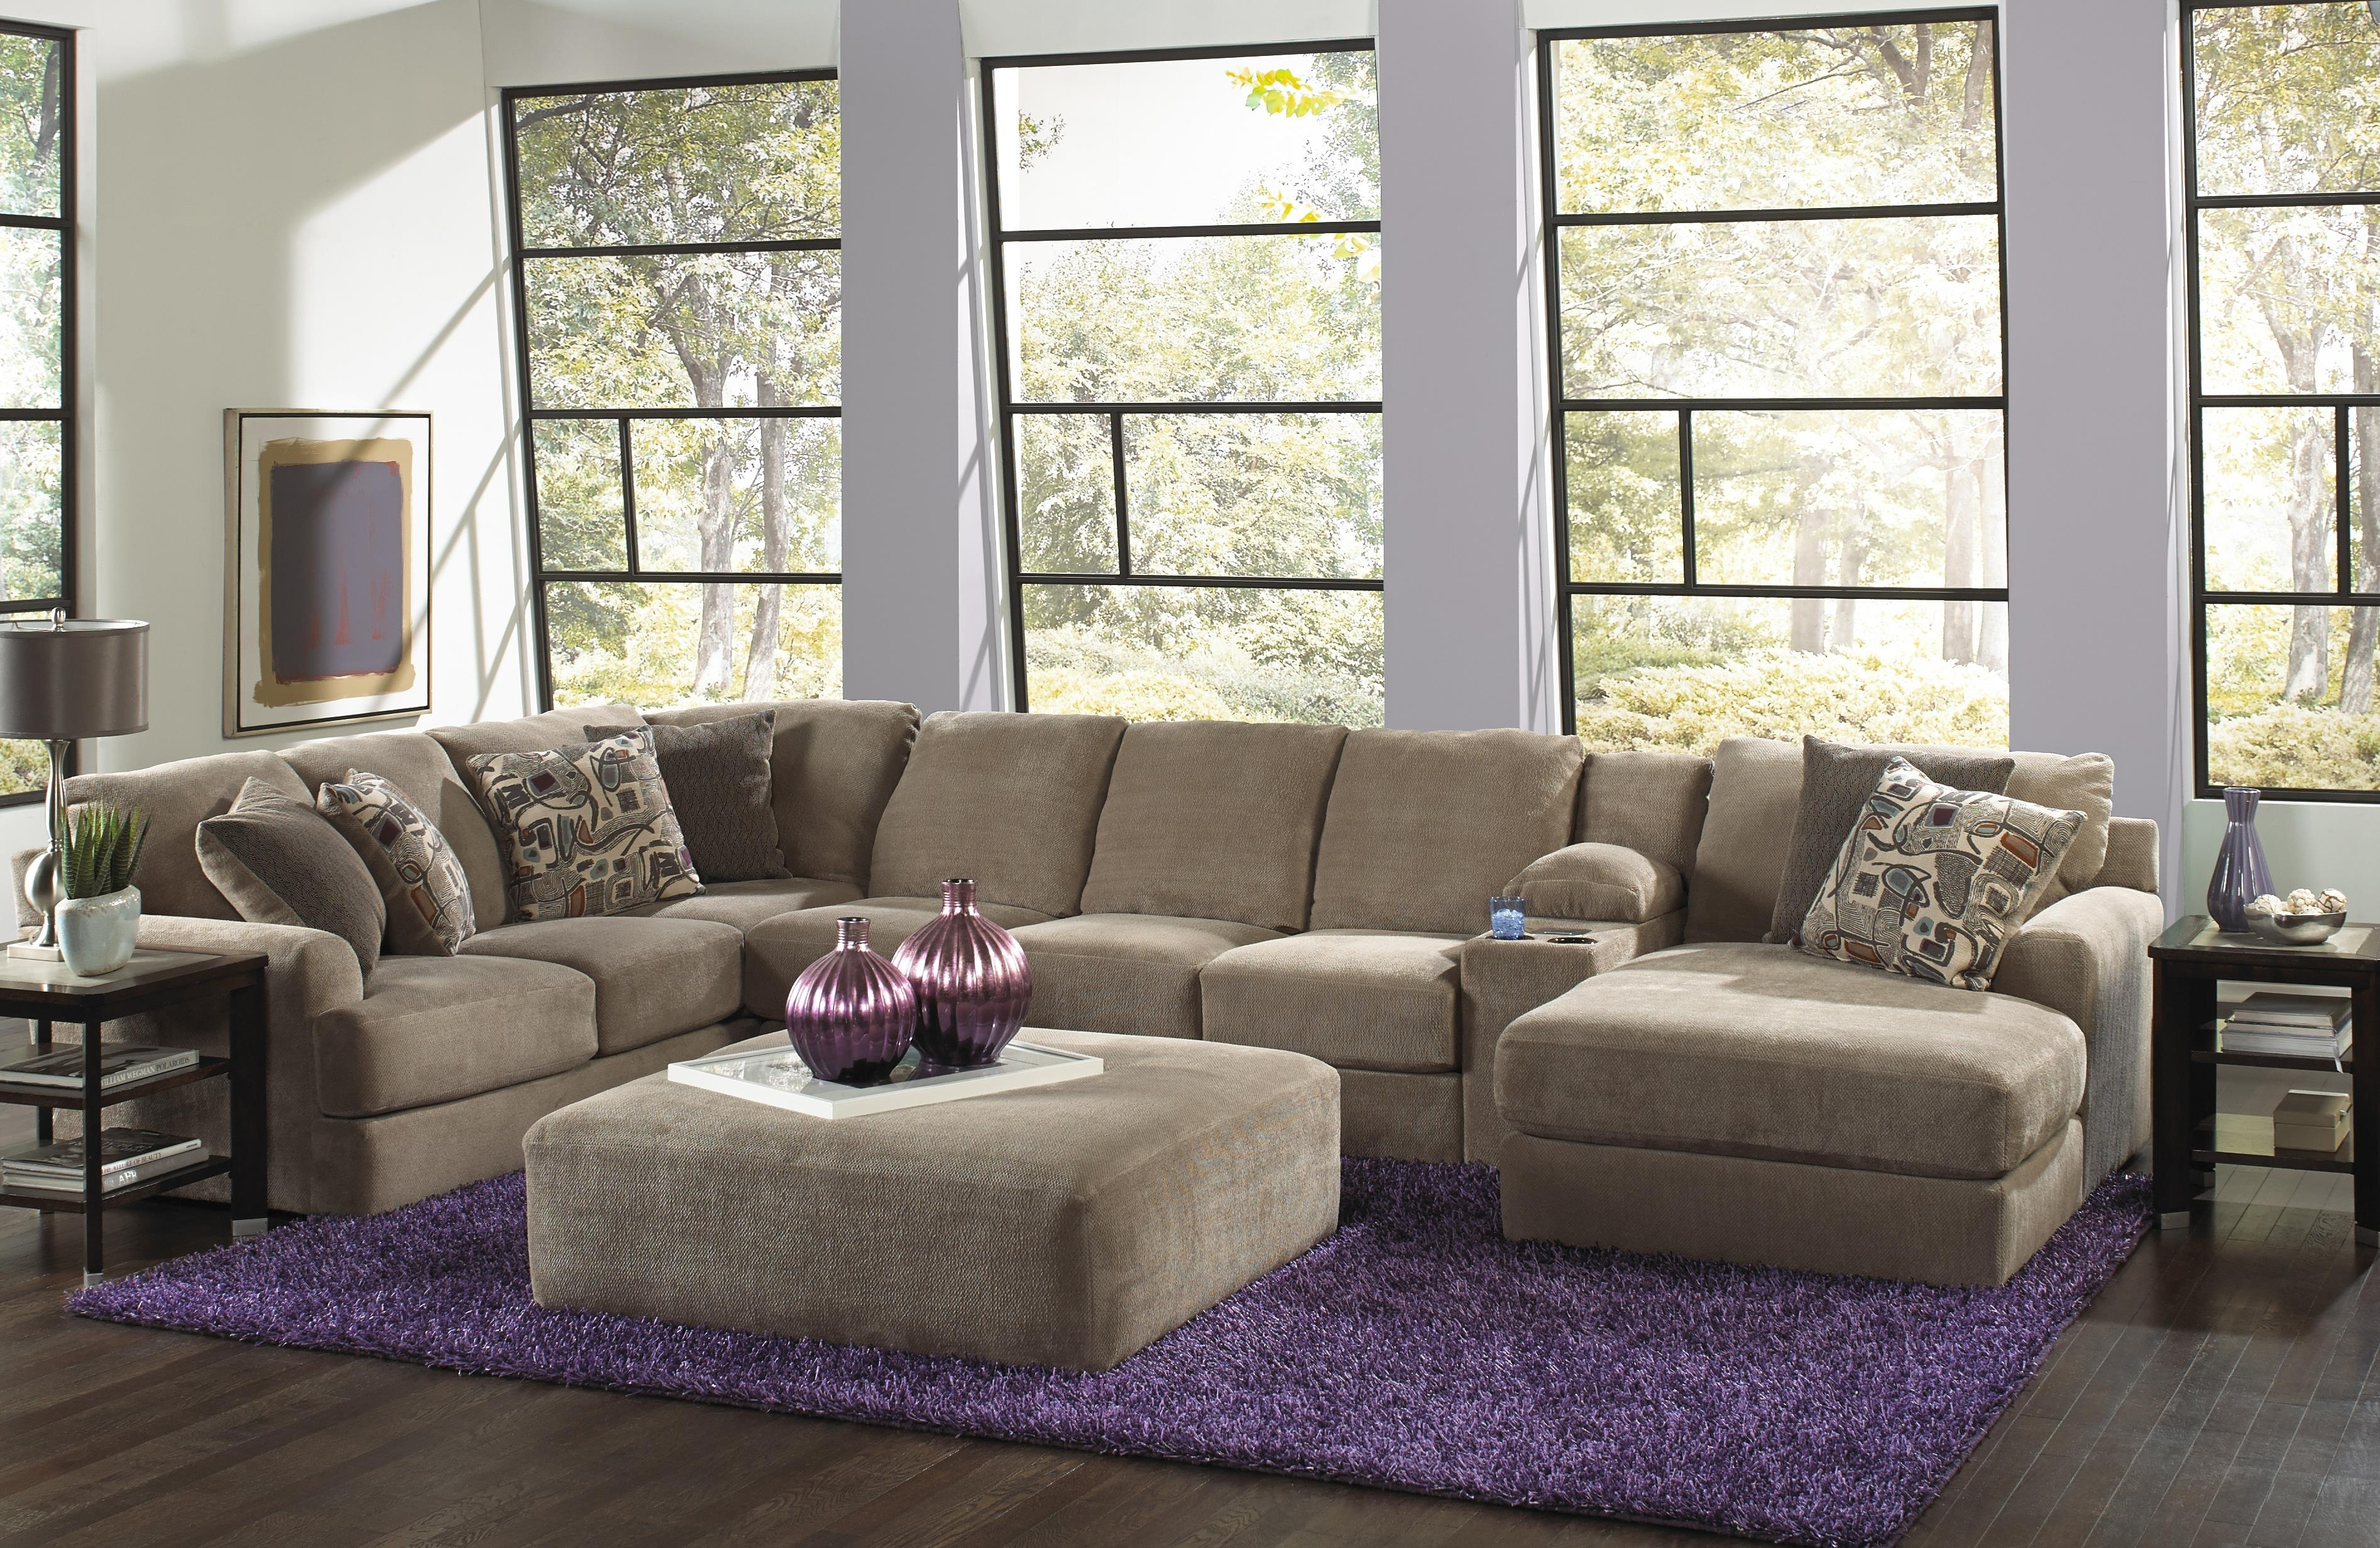 Jackson Furniture Malibu Six Seat Sectional Sofa With Console with Jackson 6 Piece Power Reclining Sectionals (Image 19 of 30)